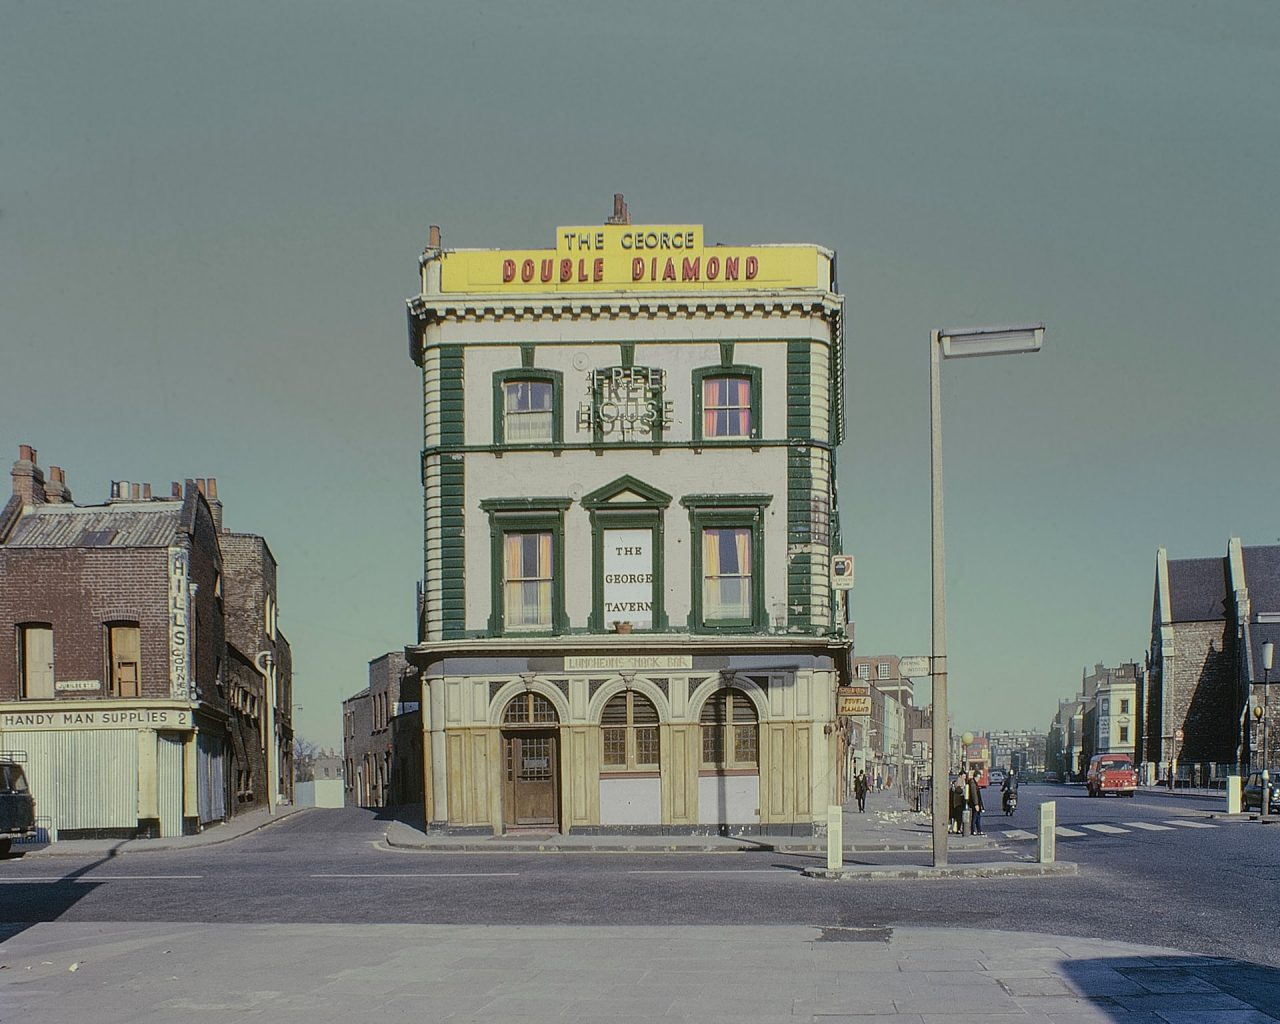 Sensational Kodachrome Photos of London's East End by David Granick